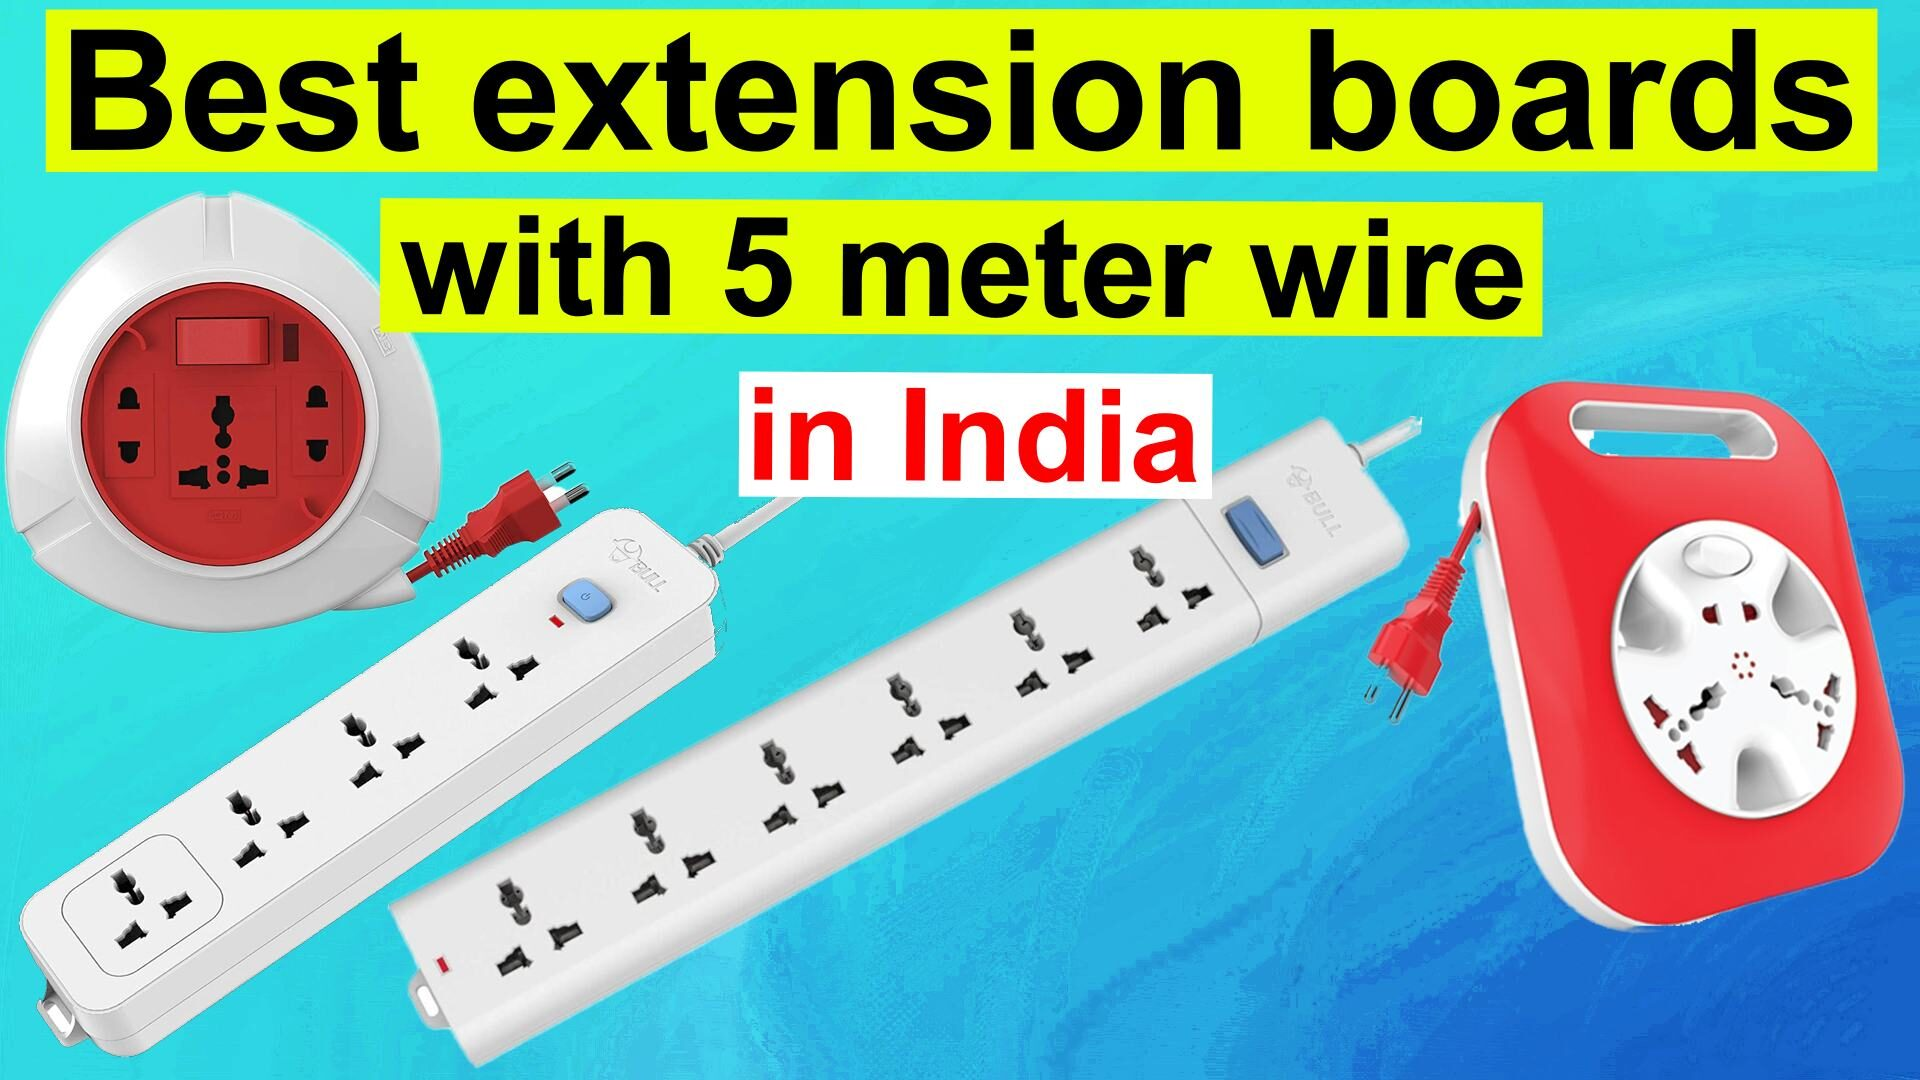 Best extension boards with 5 meter wire in India